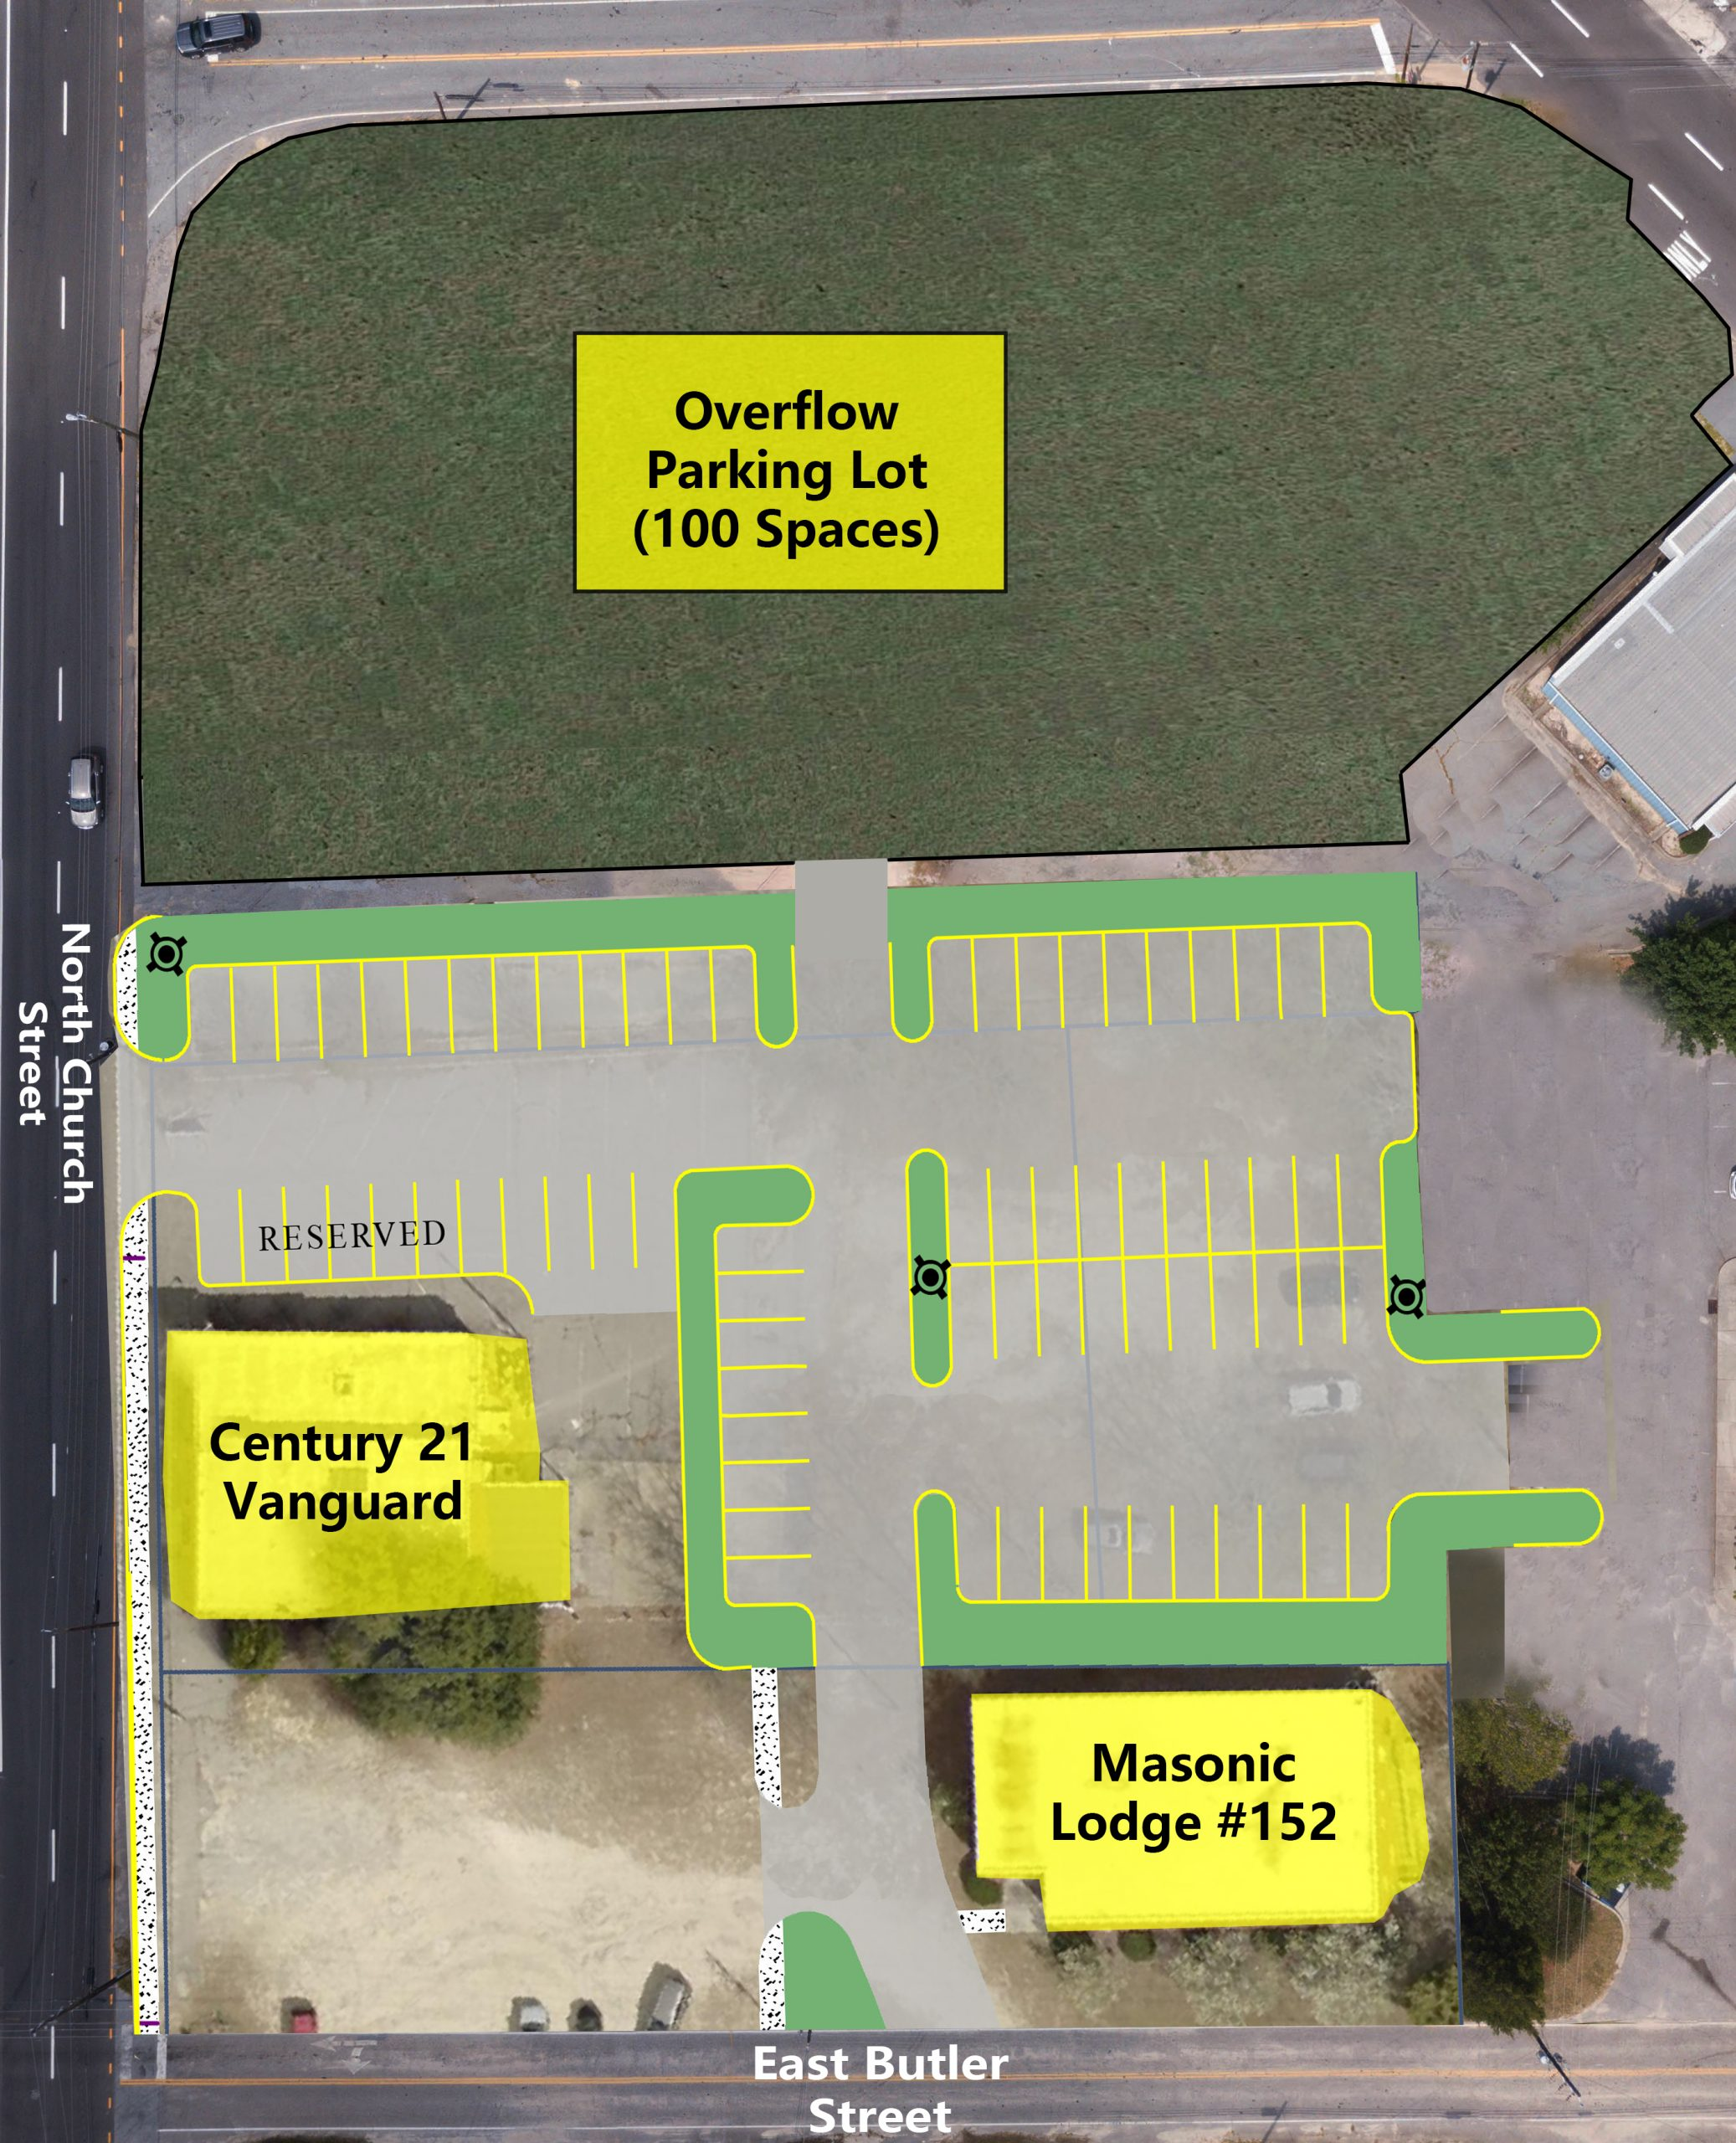 Town of Lexington Expands Downtown Parking with 165 new spots